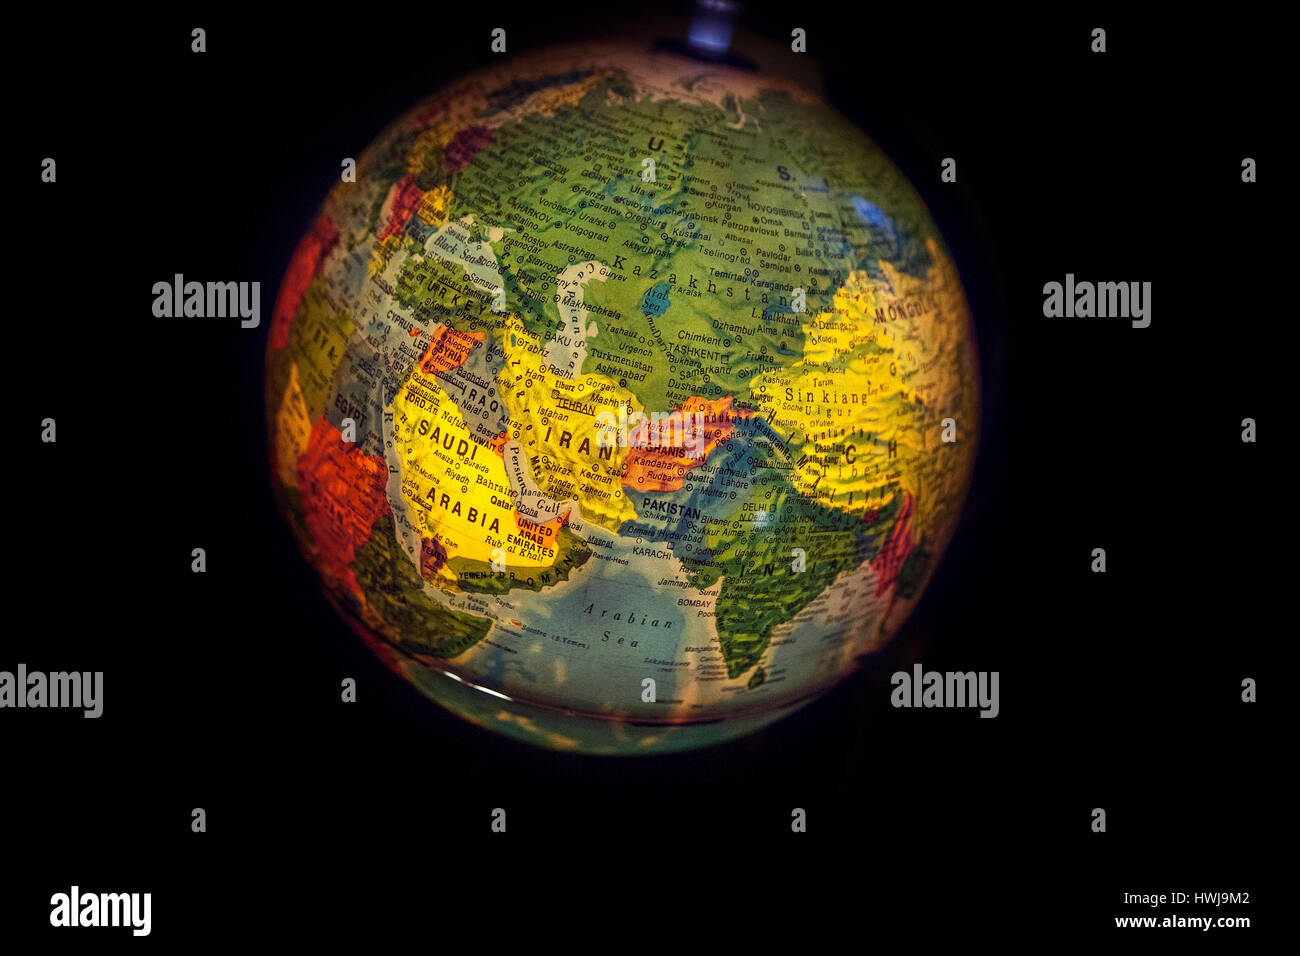 World Map Globe Ball. close up of old fashioned world globe a ball shaped map lit from within  focusing on ASIA INDIA USSR ARABIA CHINA